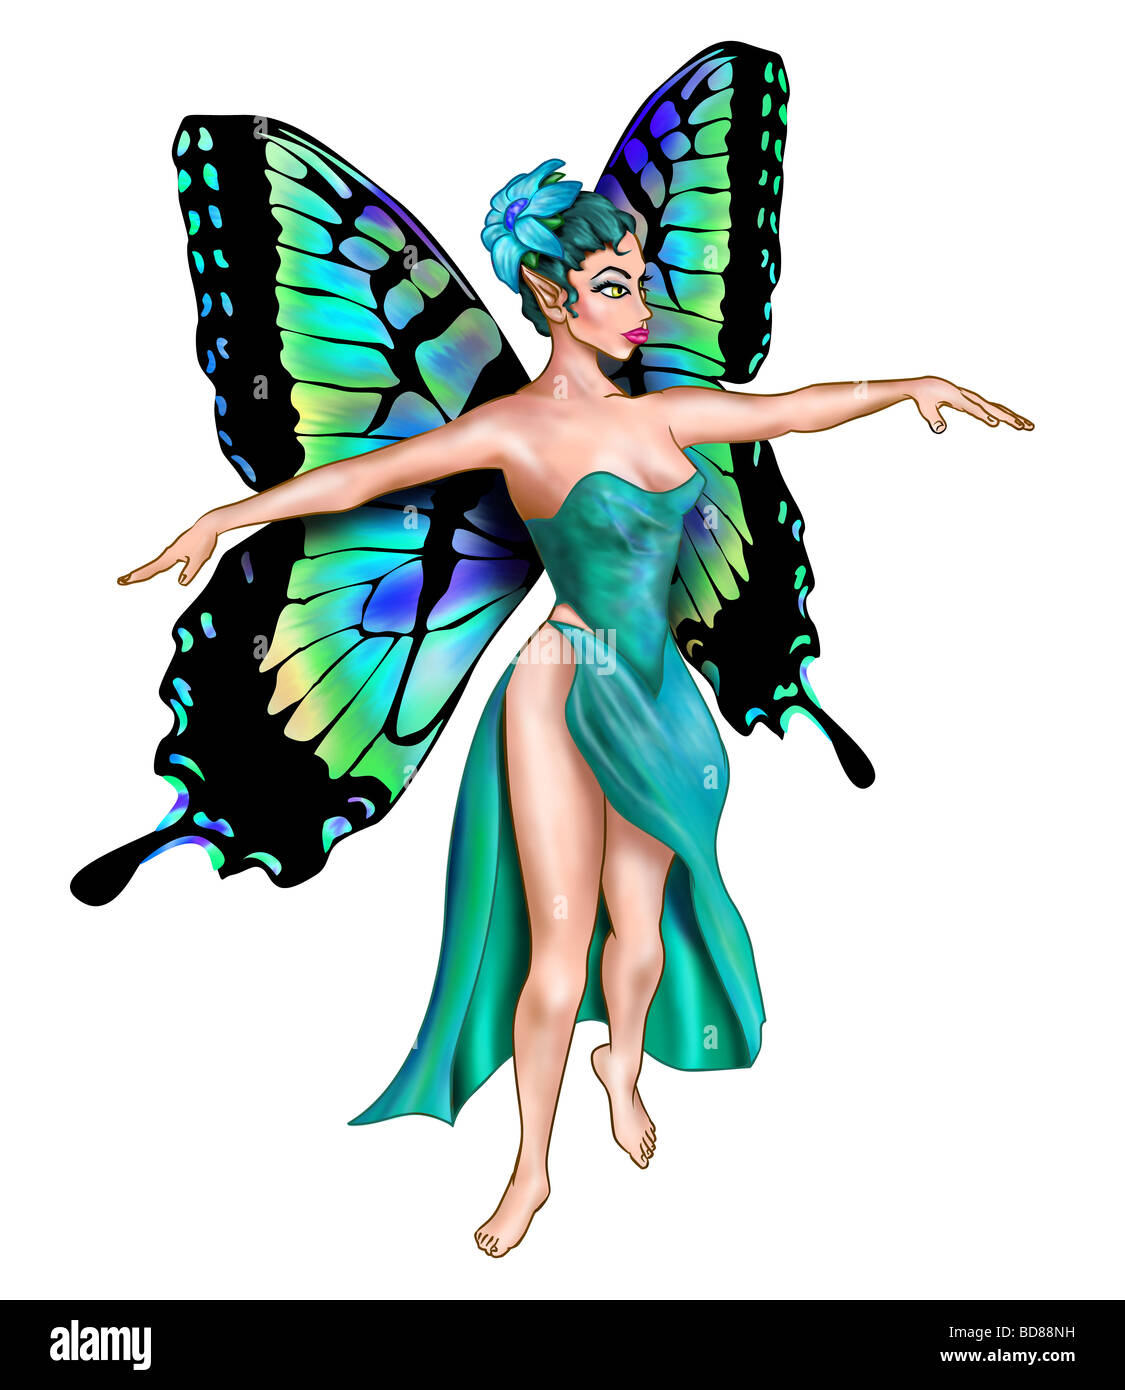 Isolated illustration of a turquoise fairy dancer - Stock Image